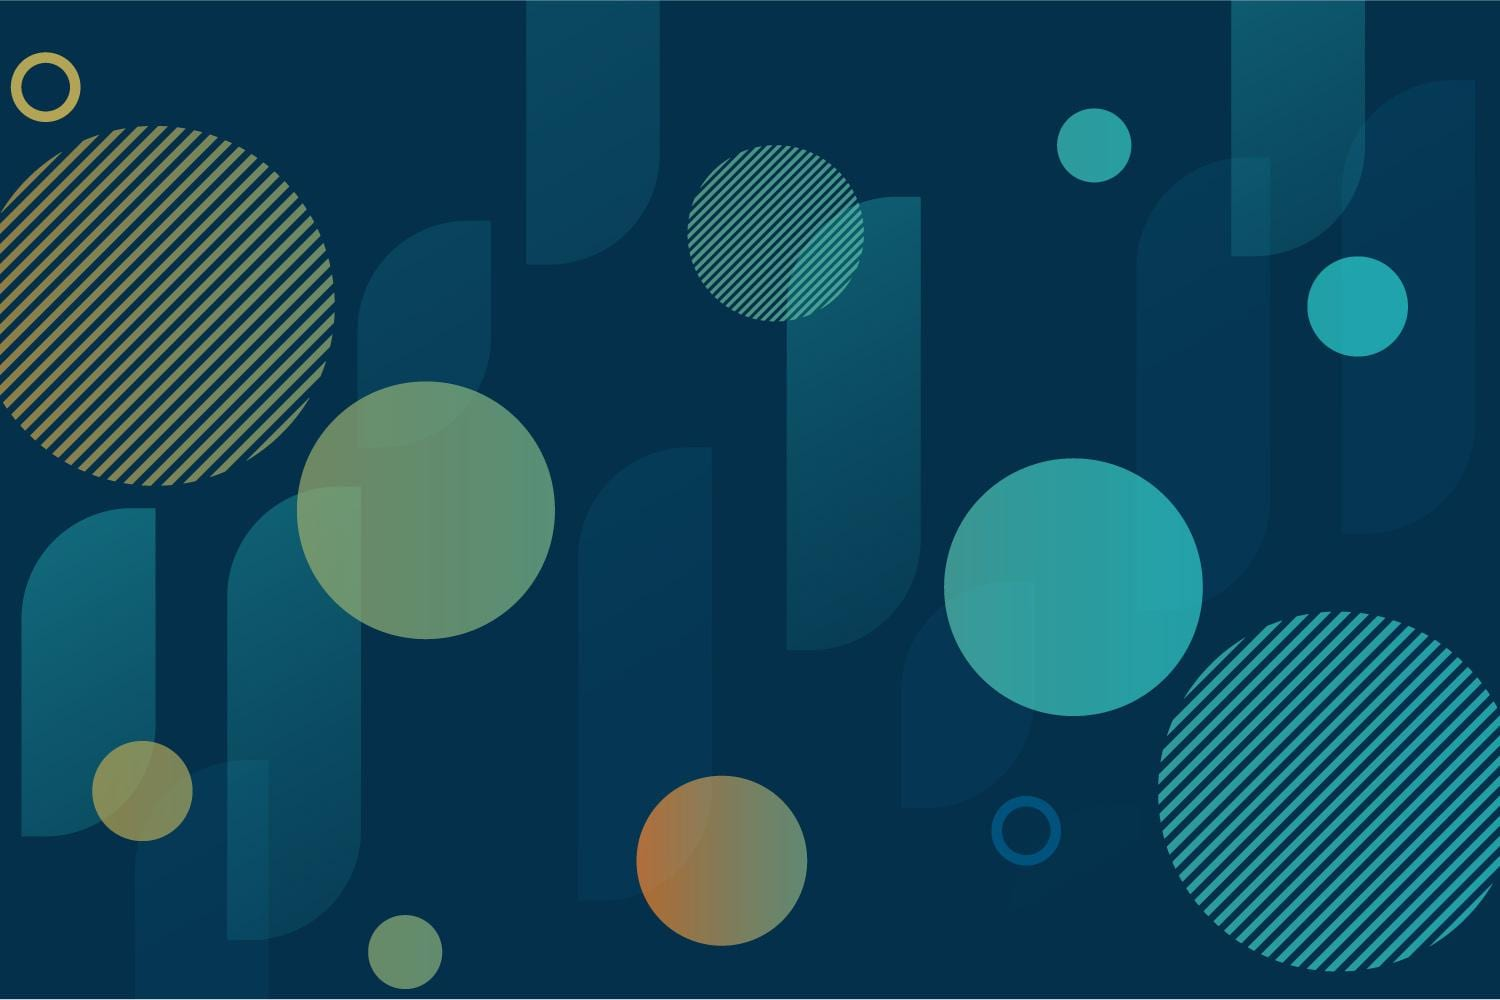 Blue, green, and orange circular pattern on blue background